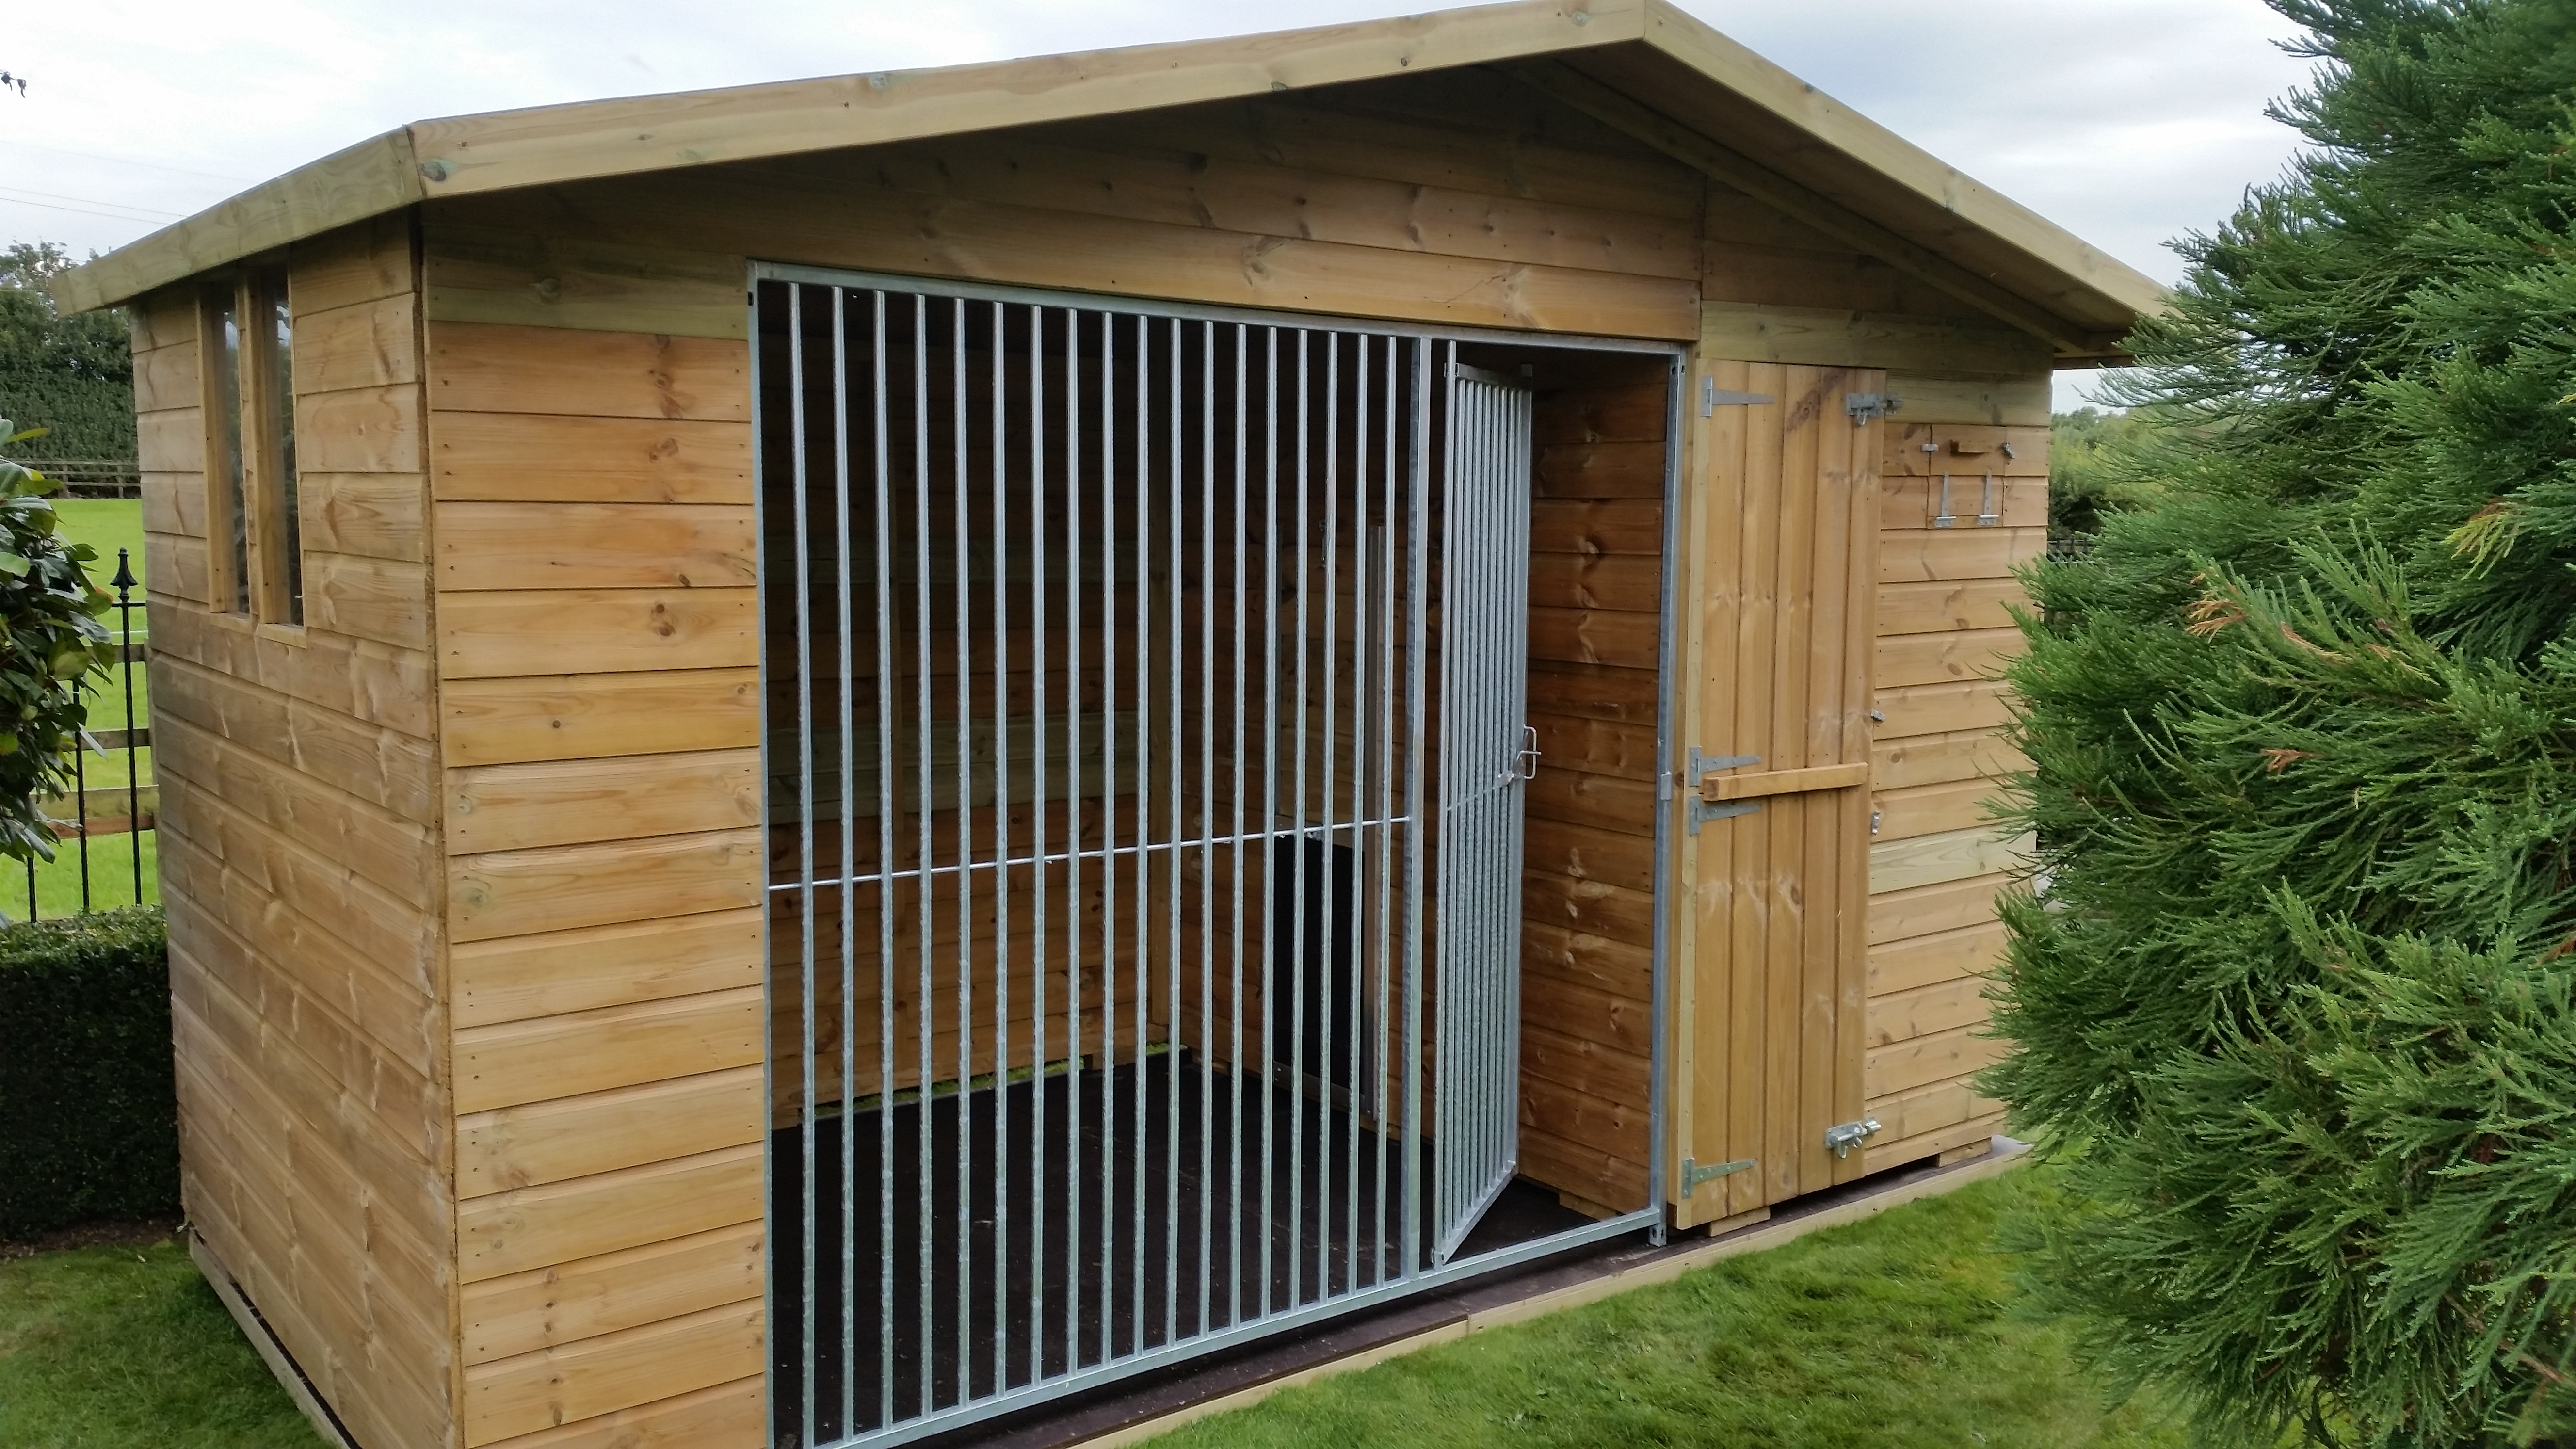 The Bramhall 10.6ft Wide x 4ft Deep Dog Kennel